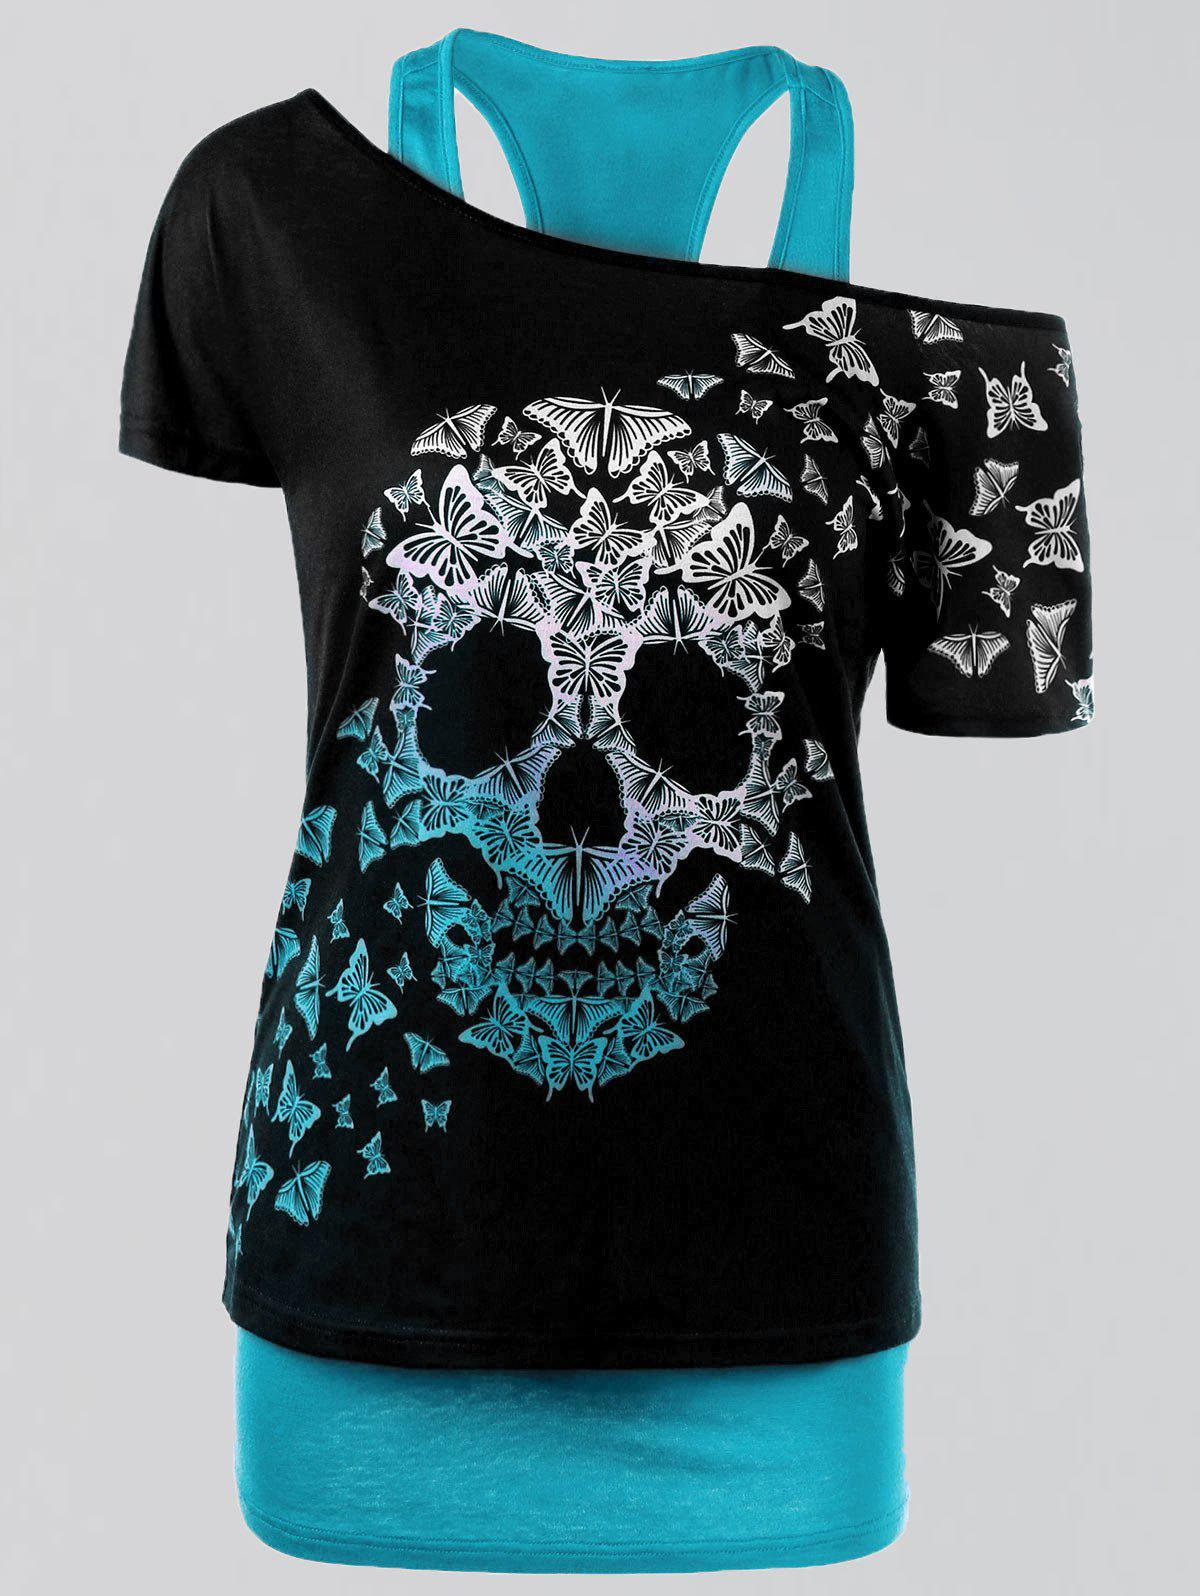 Plus Size Butterfly Skull T-shirt and Tank TopWOMEN<br><br>Size: 4XL; Color: LAKE BLUE; Material: Polyester,Spandex; Shirt Length: Regular; Sleeve Length: Short; Collar: Convertible Collar; Style: Casual; Season: Summer; Pattern Type: Skulls; Weight: 0.3500kg; Package Contents: 1 x T-shirt  1 x Tank Top;